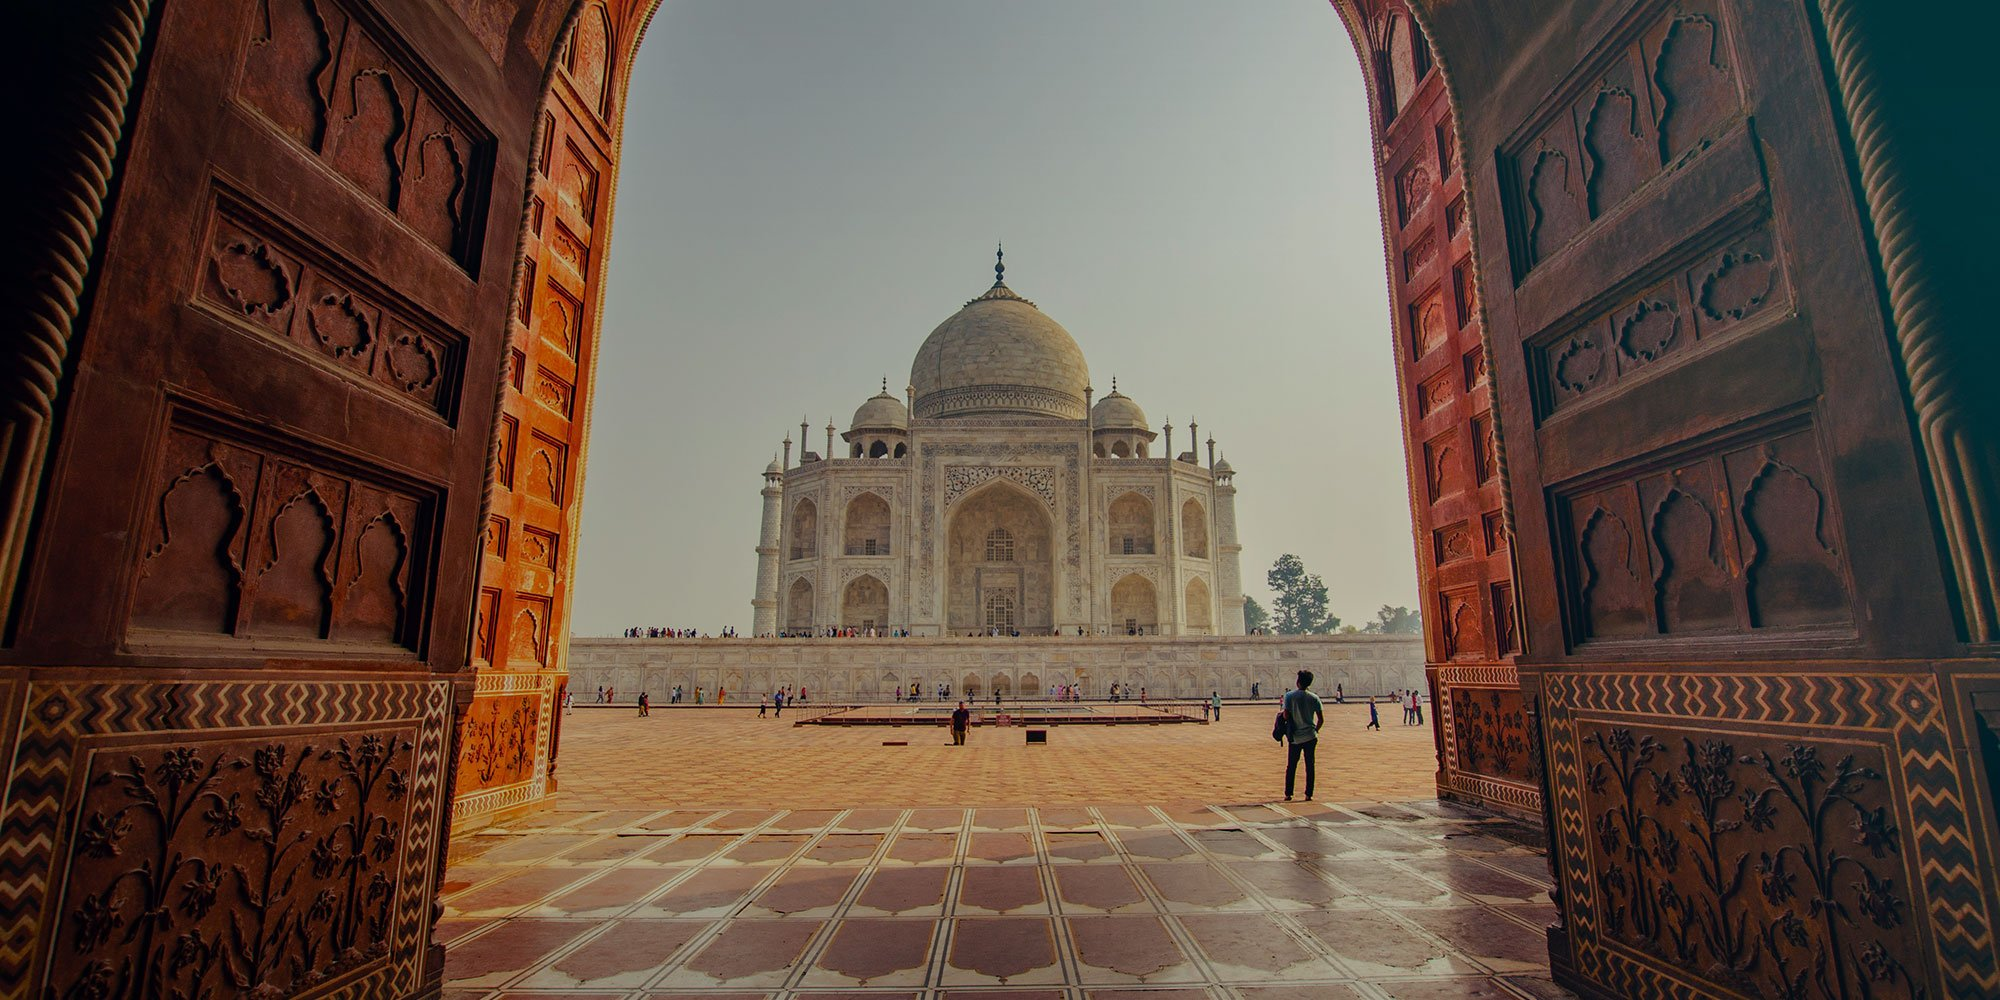 Taj Mahal, the most iconic tourist attraction to visit while you study English in New Delhi